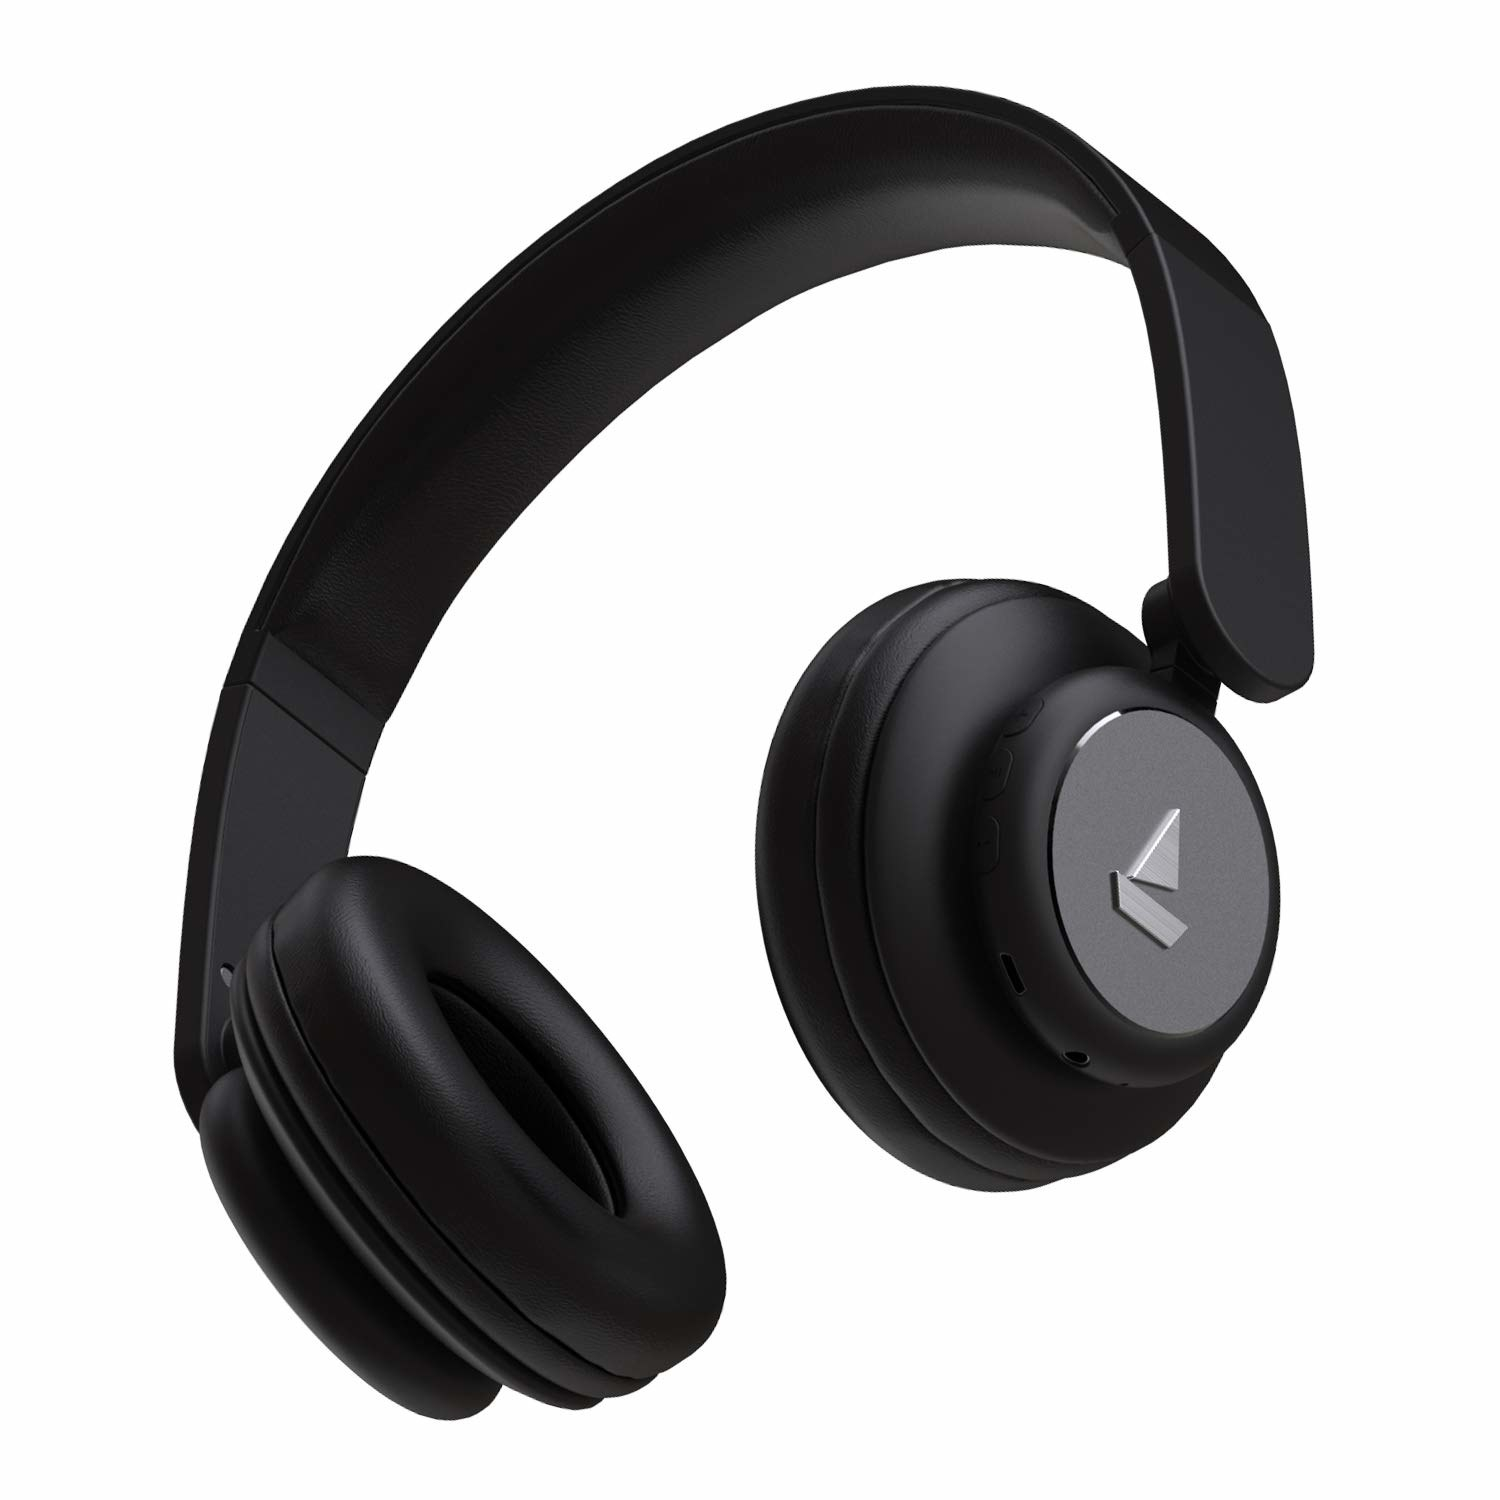 Black boAt Rockerz 450 wireless headphones